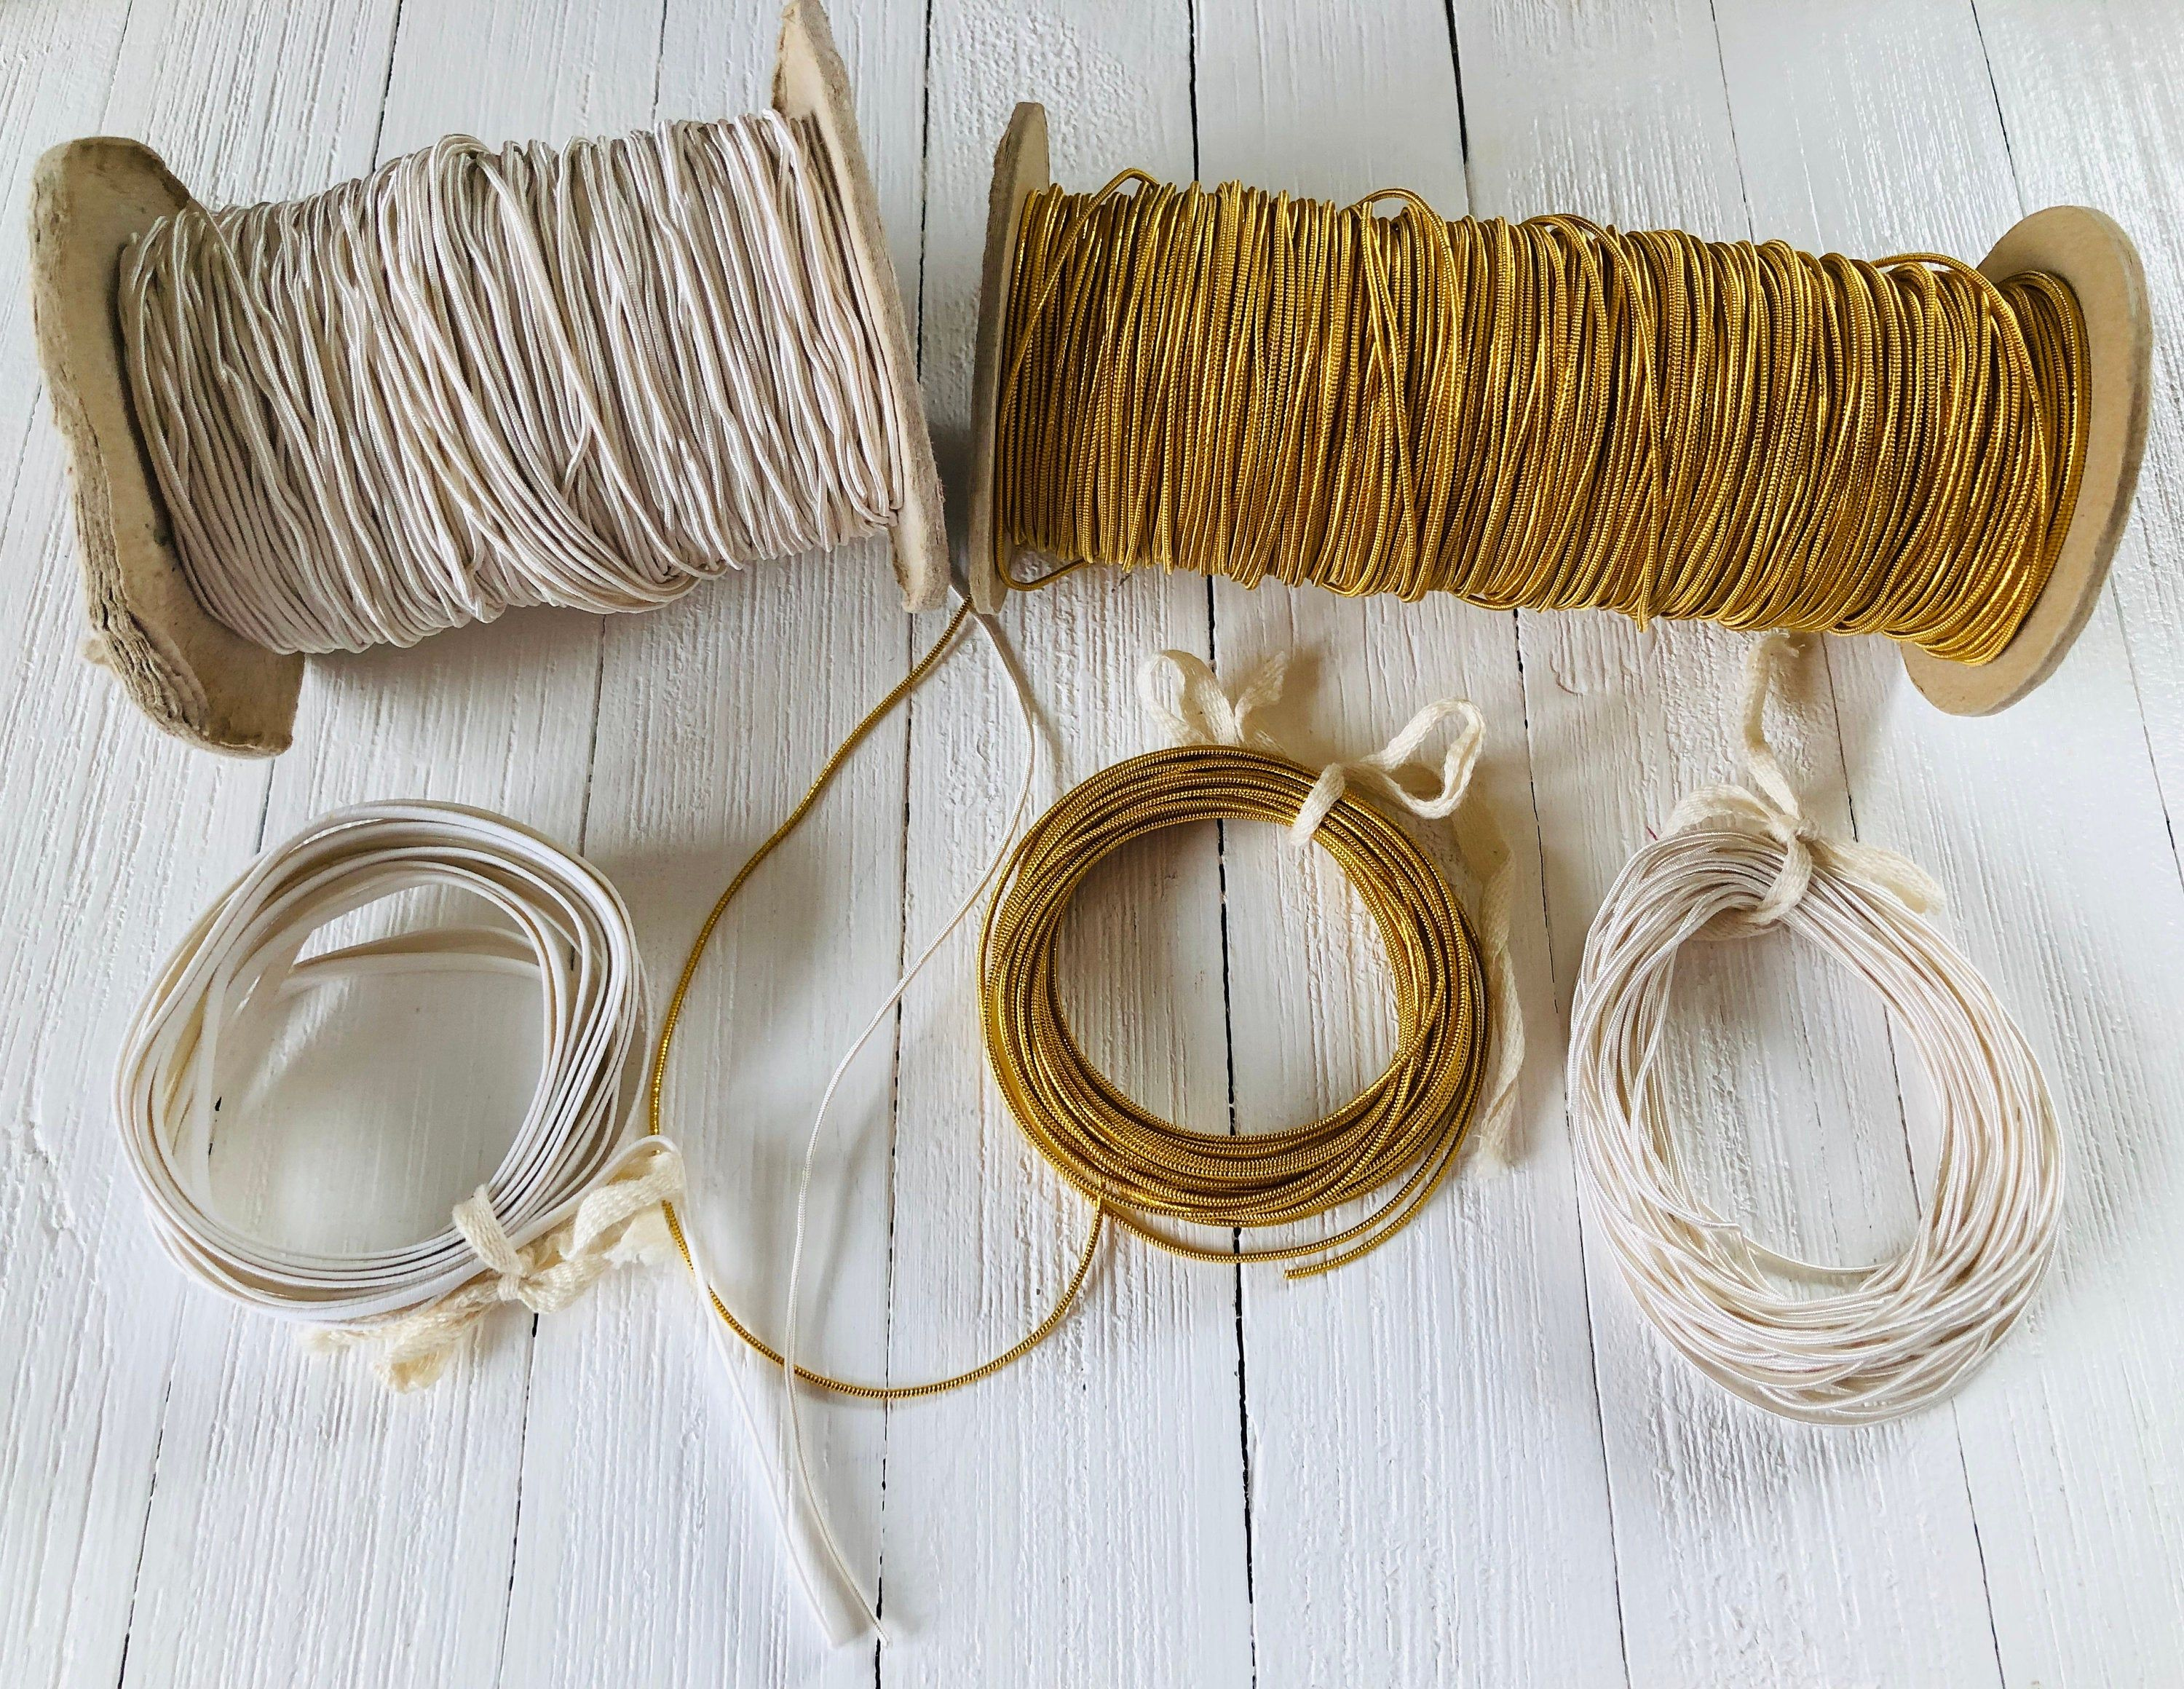 1 4 Inch Wide Elastic For Face Masks 1 16 Inch Round White Elastic 1 16 Inch Round Gold Elastic 10 Yards Of Round By Recycl